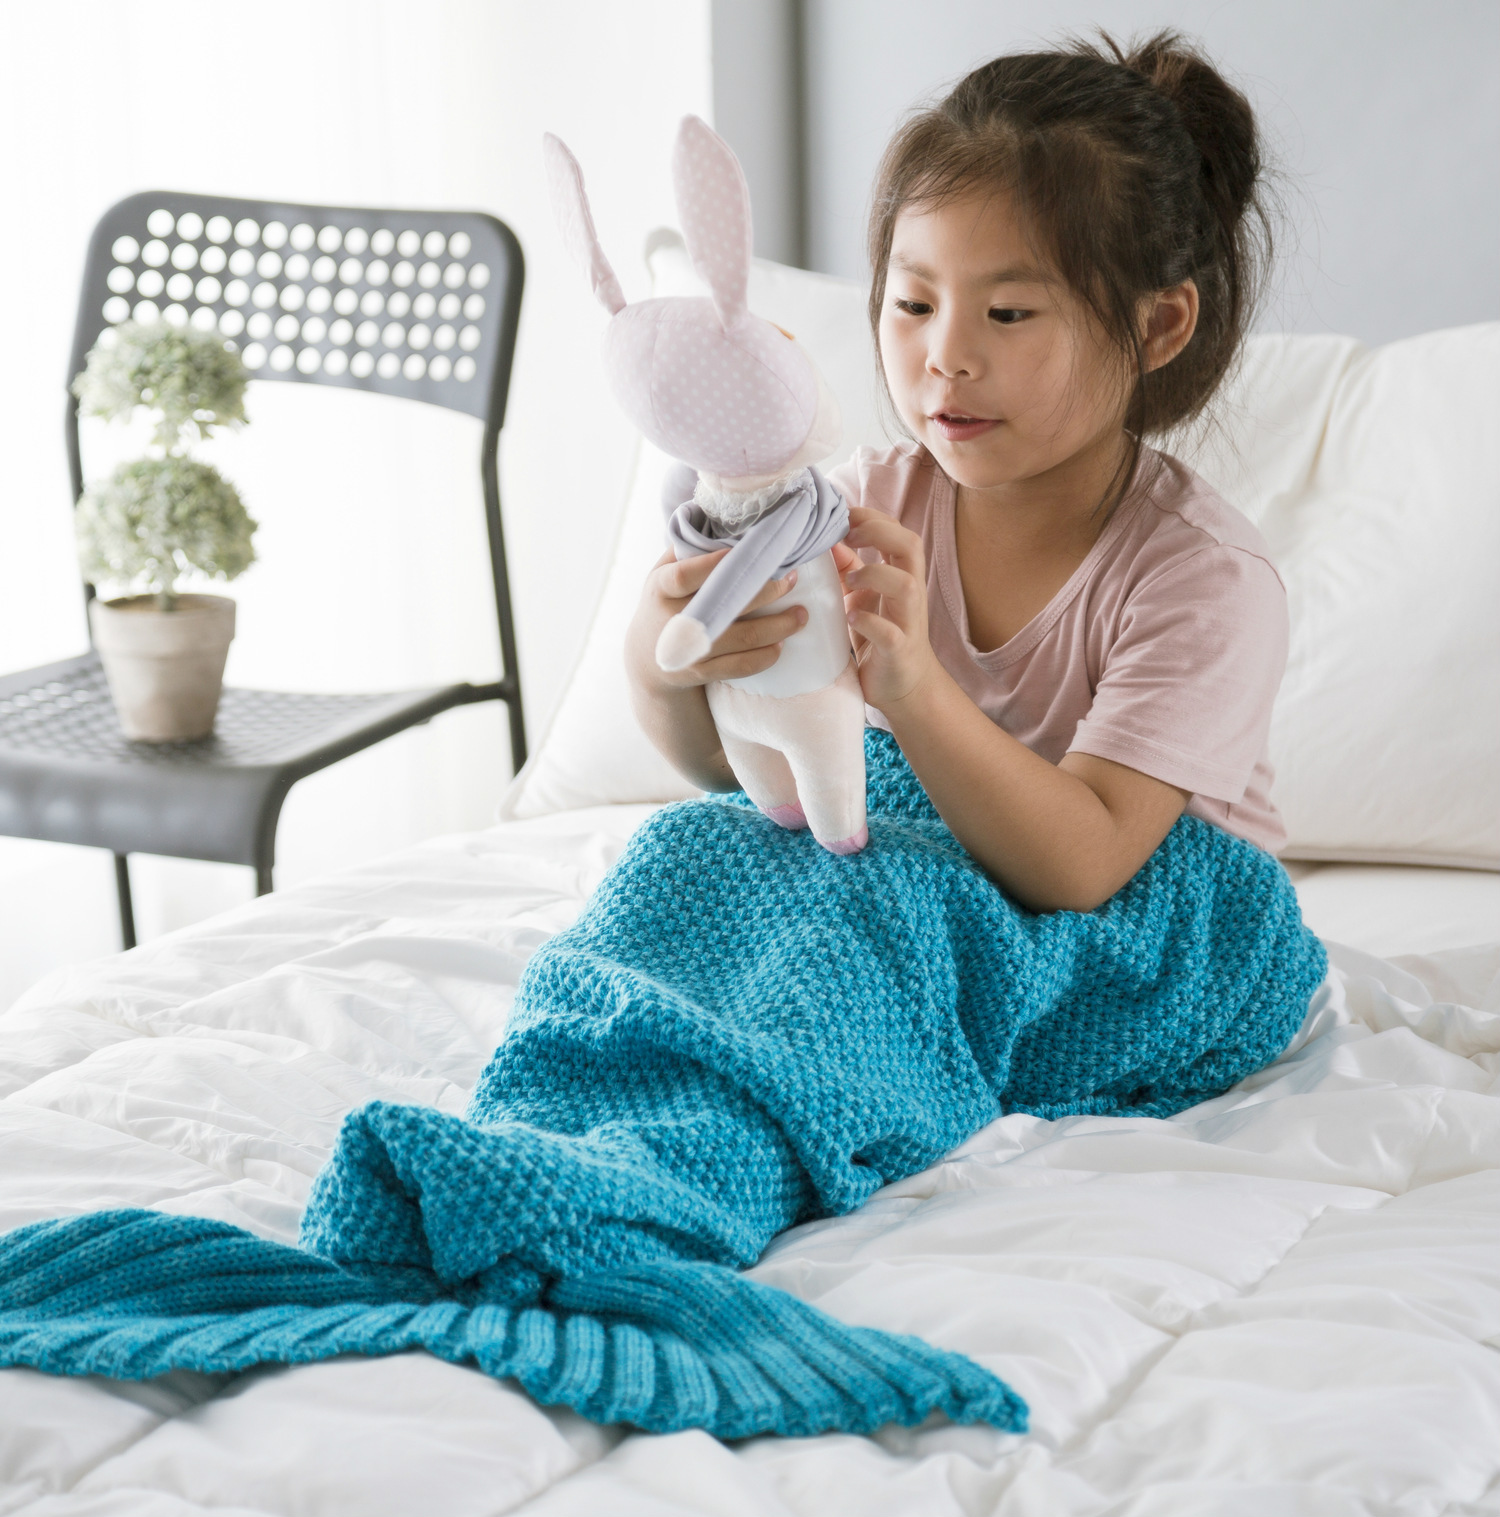 70x140cm Kid Mermaid Blanket Yarn Knitted Mermaid Tail Blanket Handmade Crochet Mermaid Blanket Throw Bed Wrap Soft Sleeping Bag